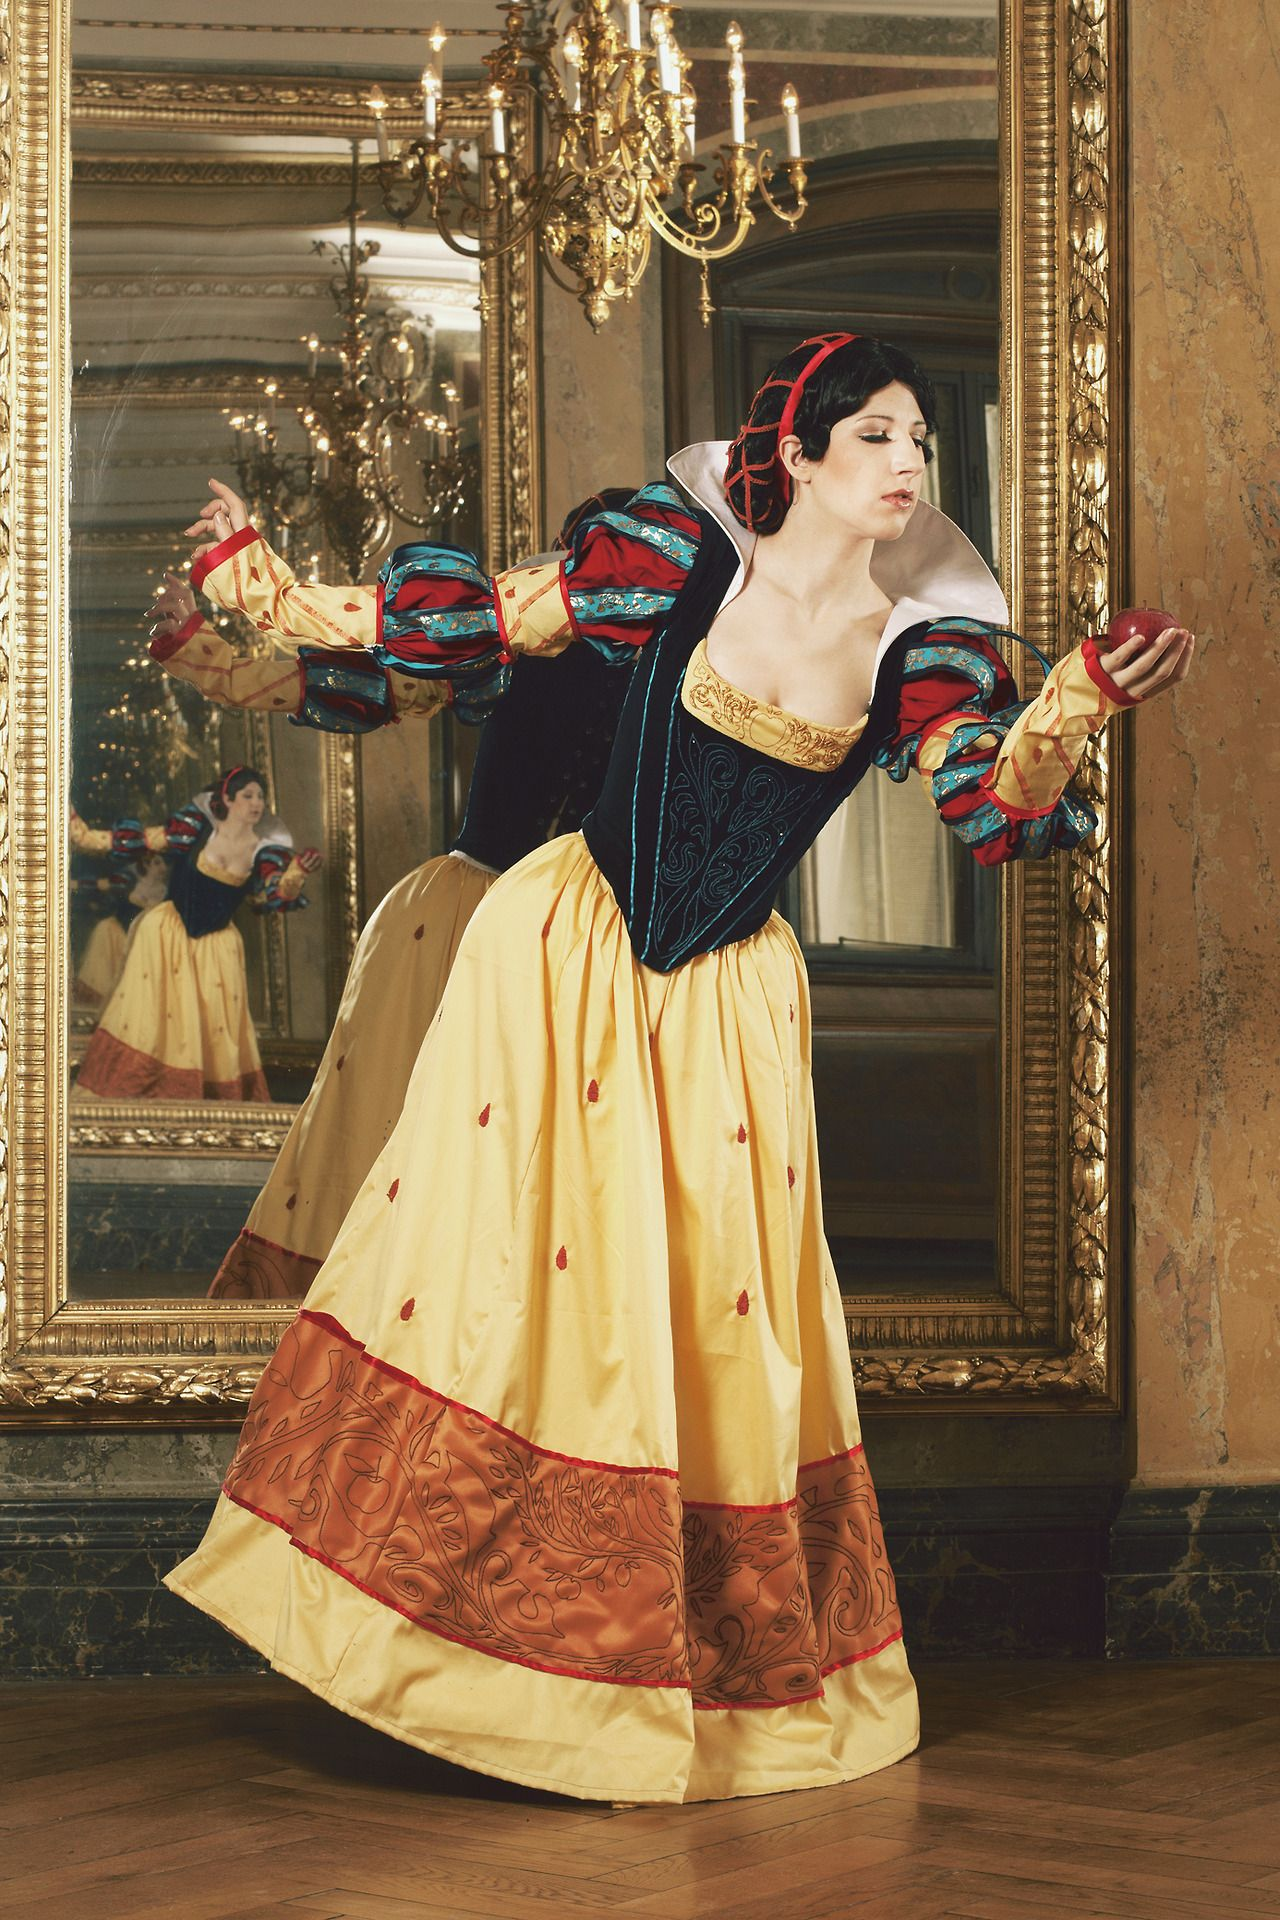 Snow White   tsu-yaa, photos by Martina Pöll   I audibly screamed a little when I saw this shot. Wowzers.